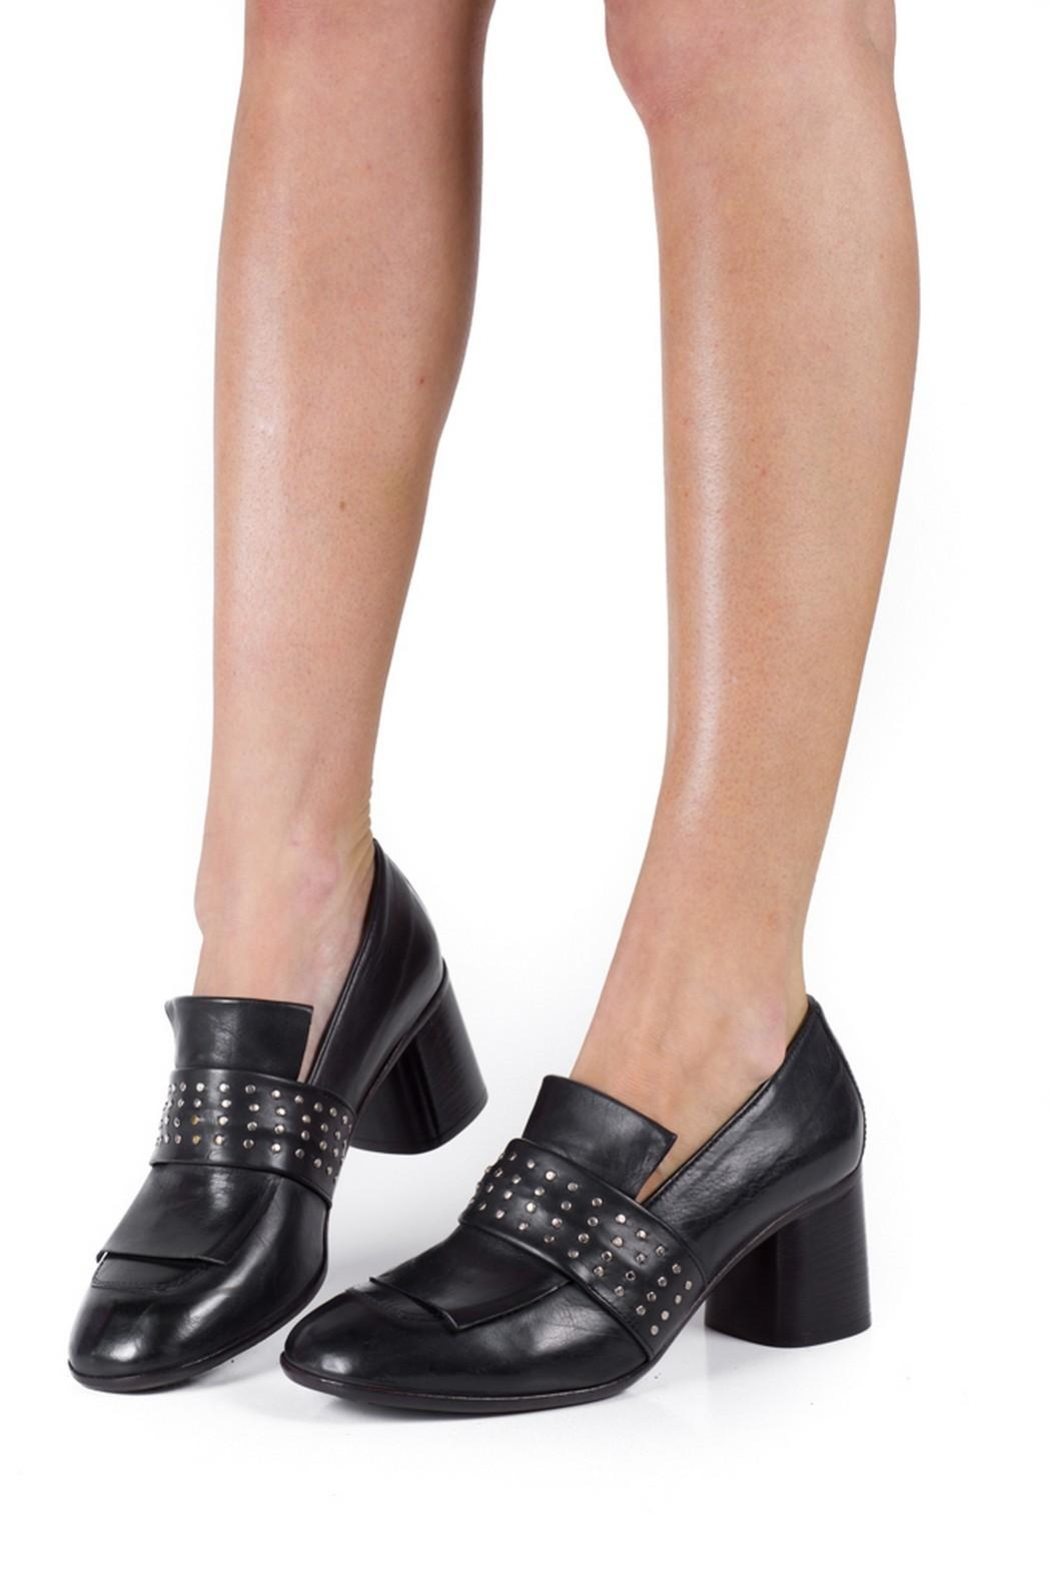 Keep Studded Heel Loafer - Back Cropped Image